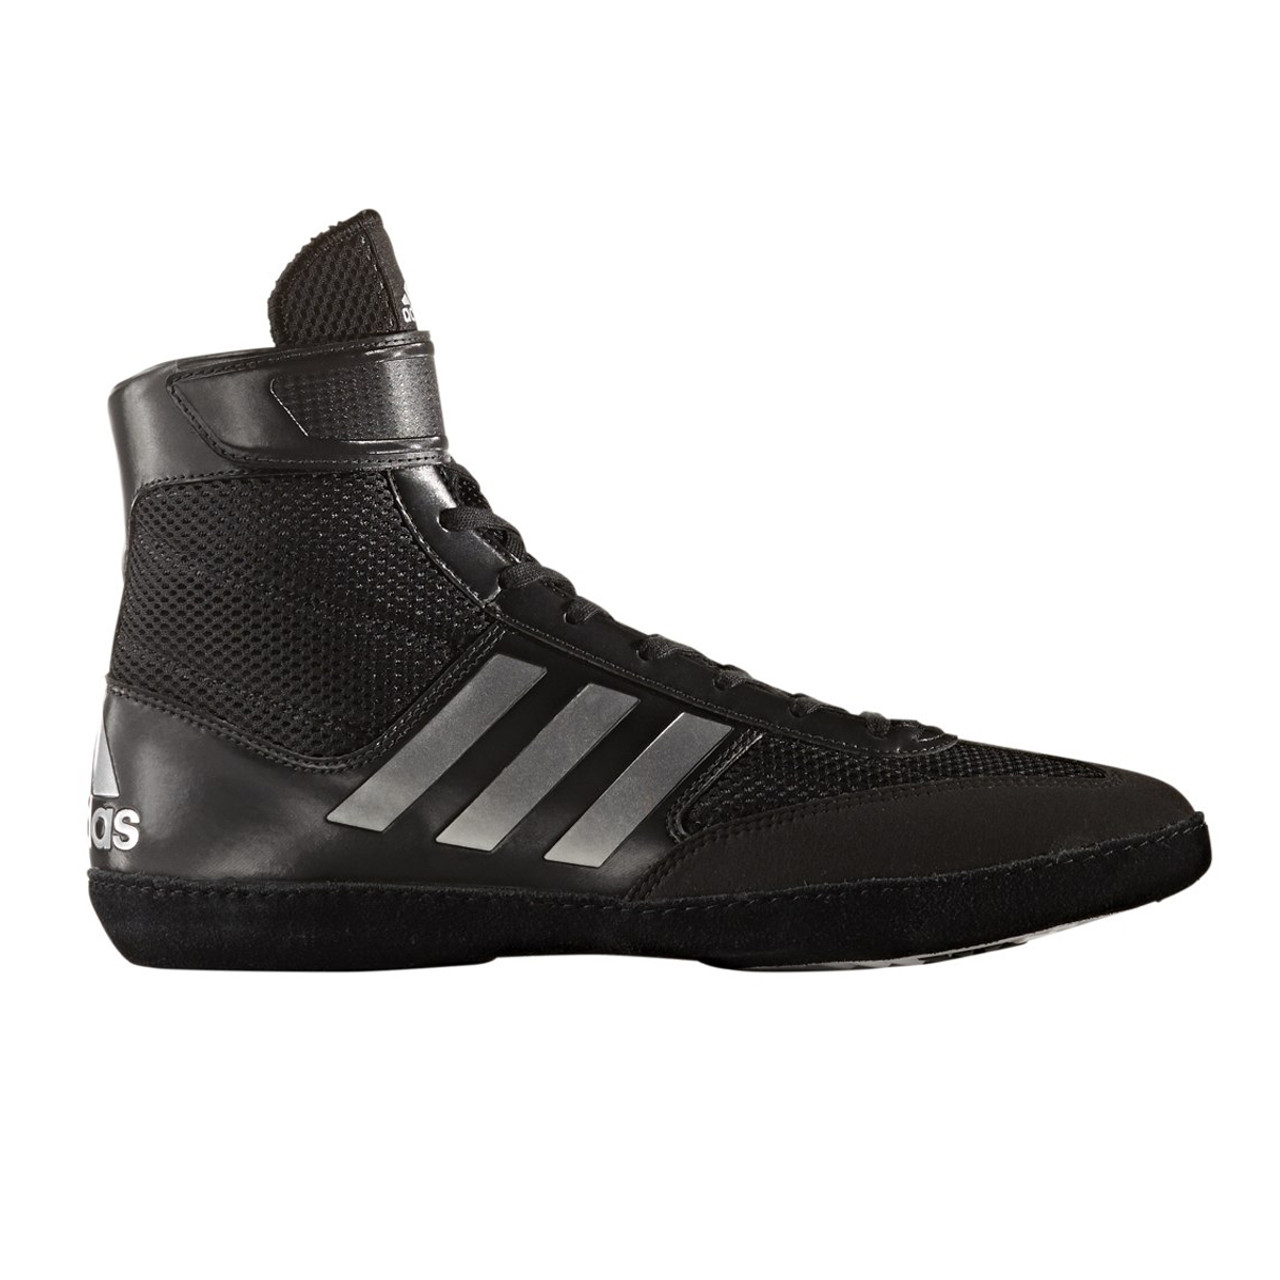 5a521f5c24f Adidas Combat Speed 5 Mens Wrestling Shoes BA8007 - Black   Silver ...